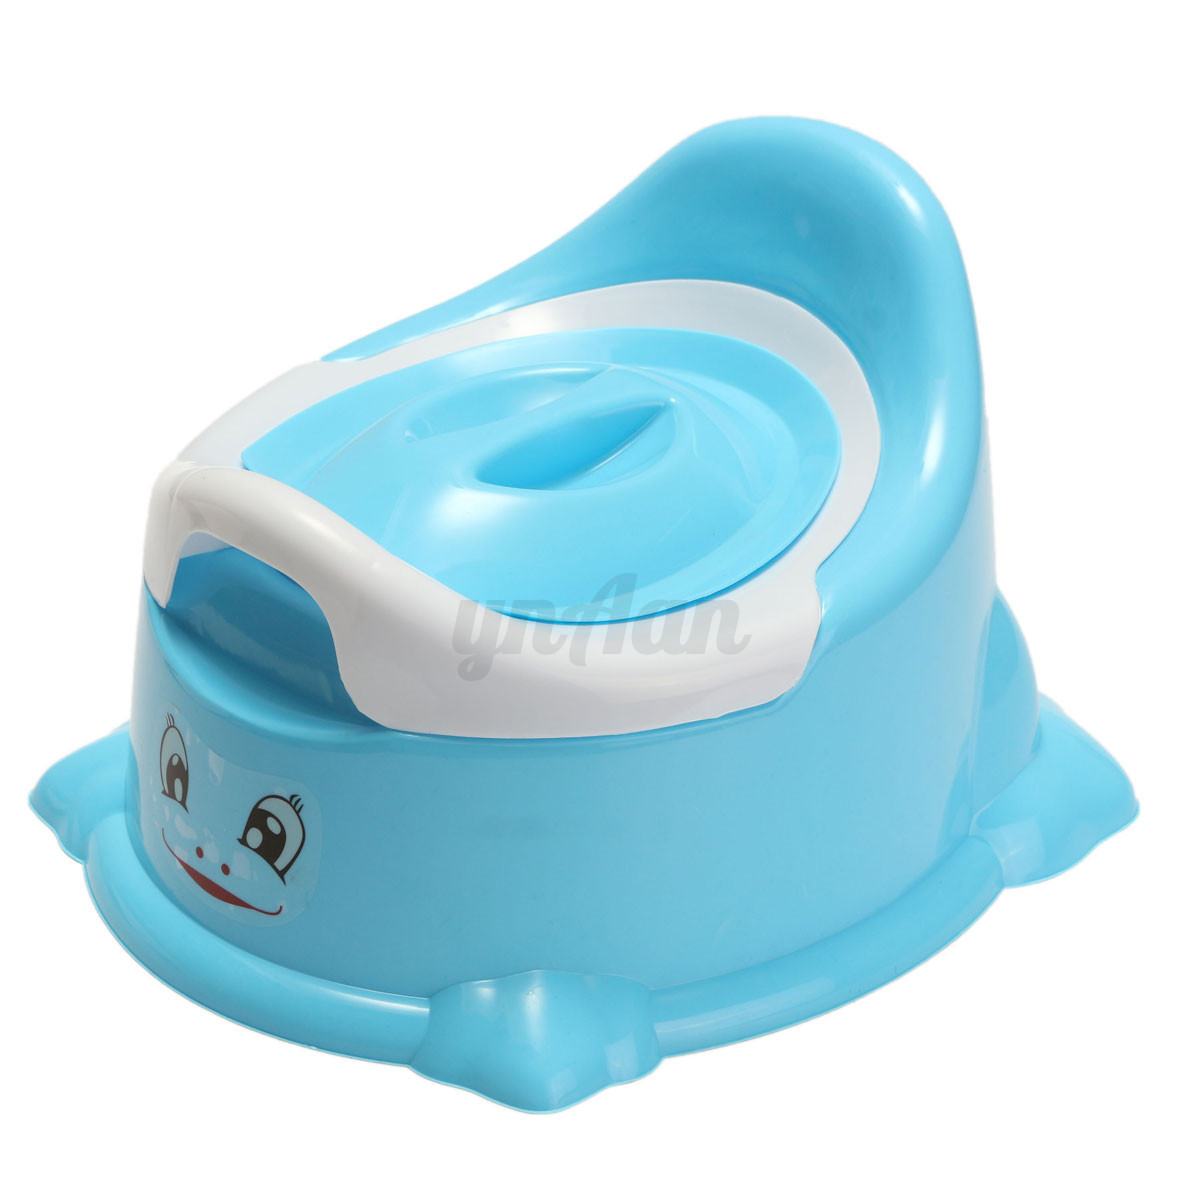 Potty Chairs For Toddlers New Portable Cartoon Potty Toilet Chair Seat Baby Toddler